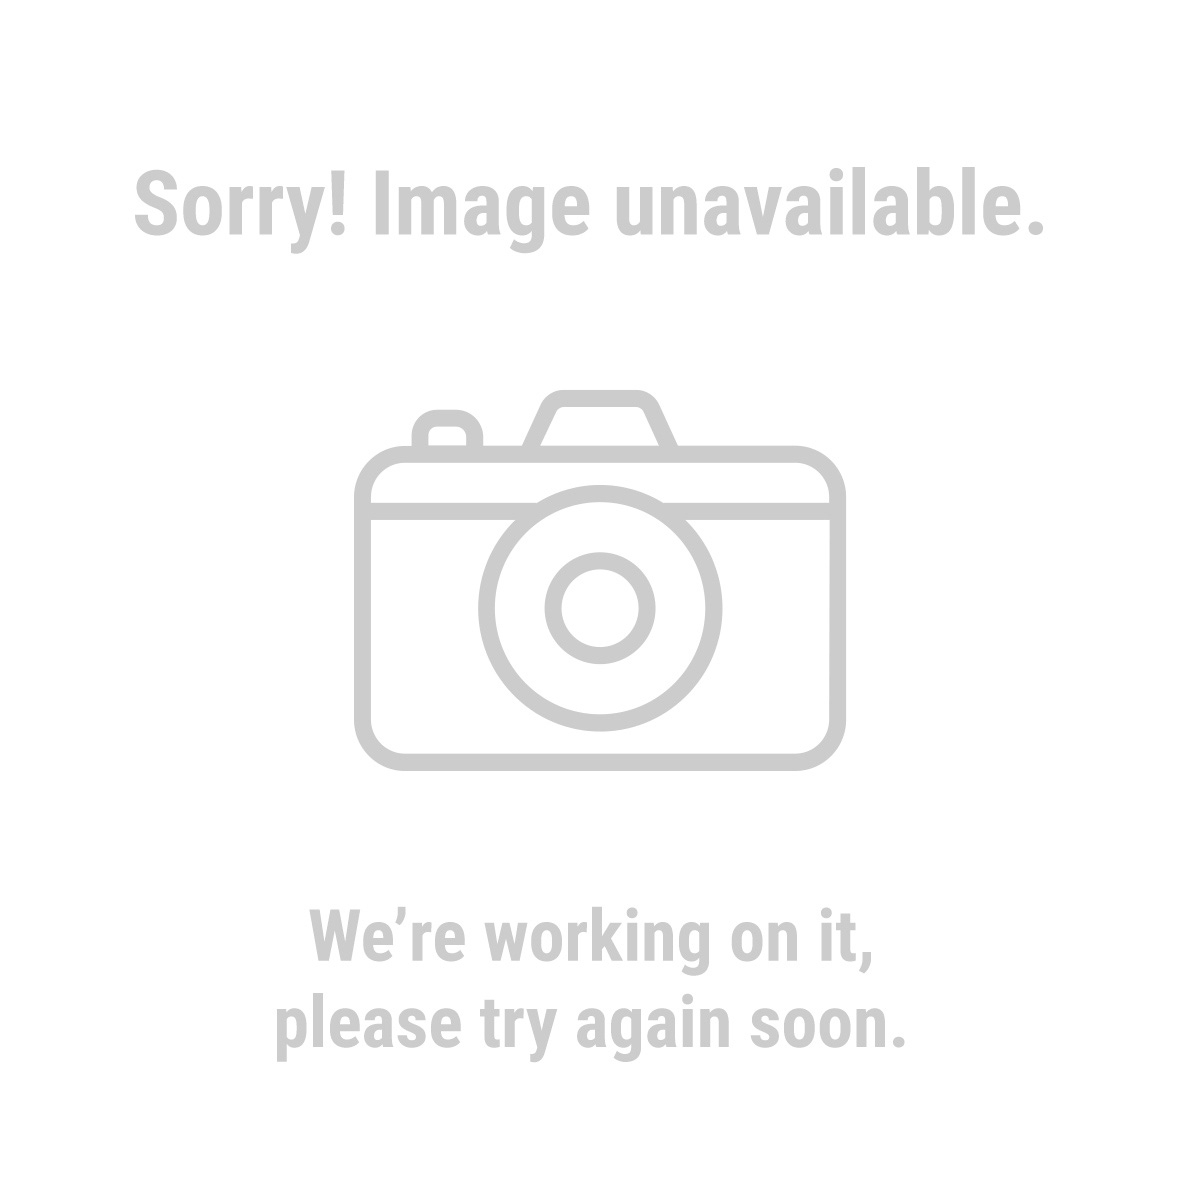 Haul-Master 61789 50 ft. x 1/4 in. Aircraft Grade Wire Rope